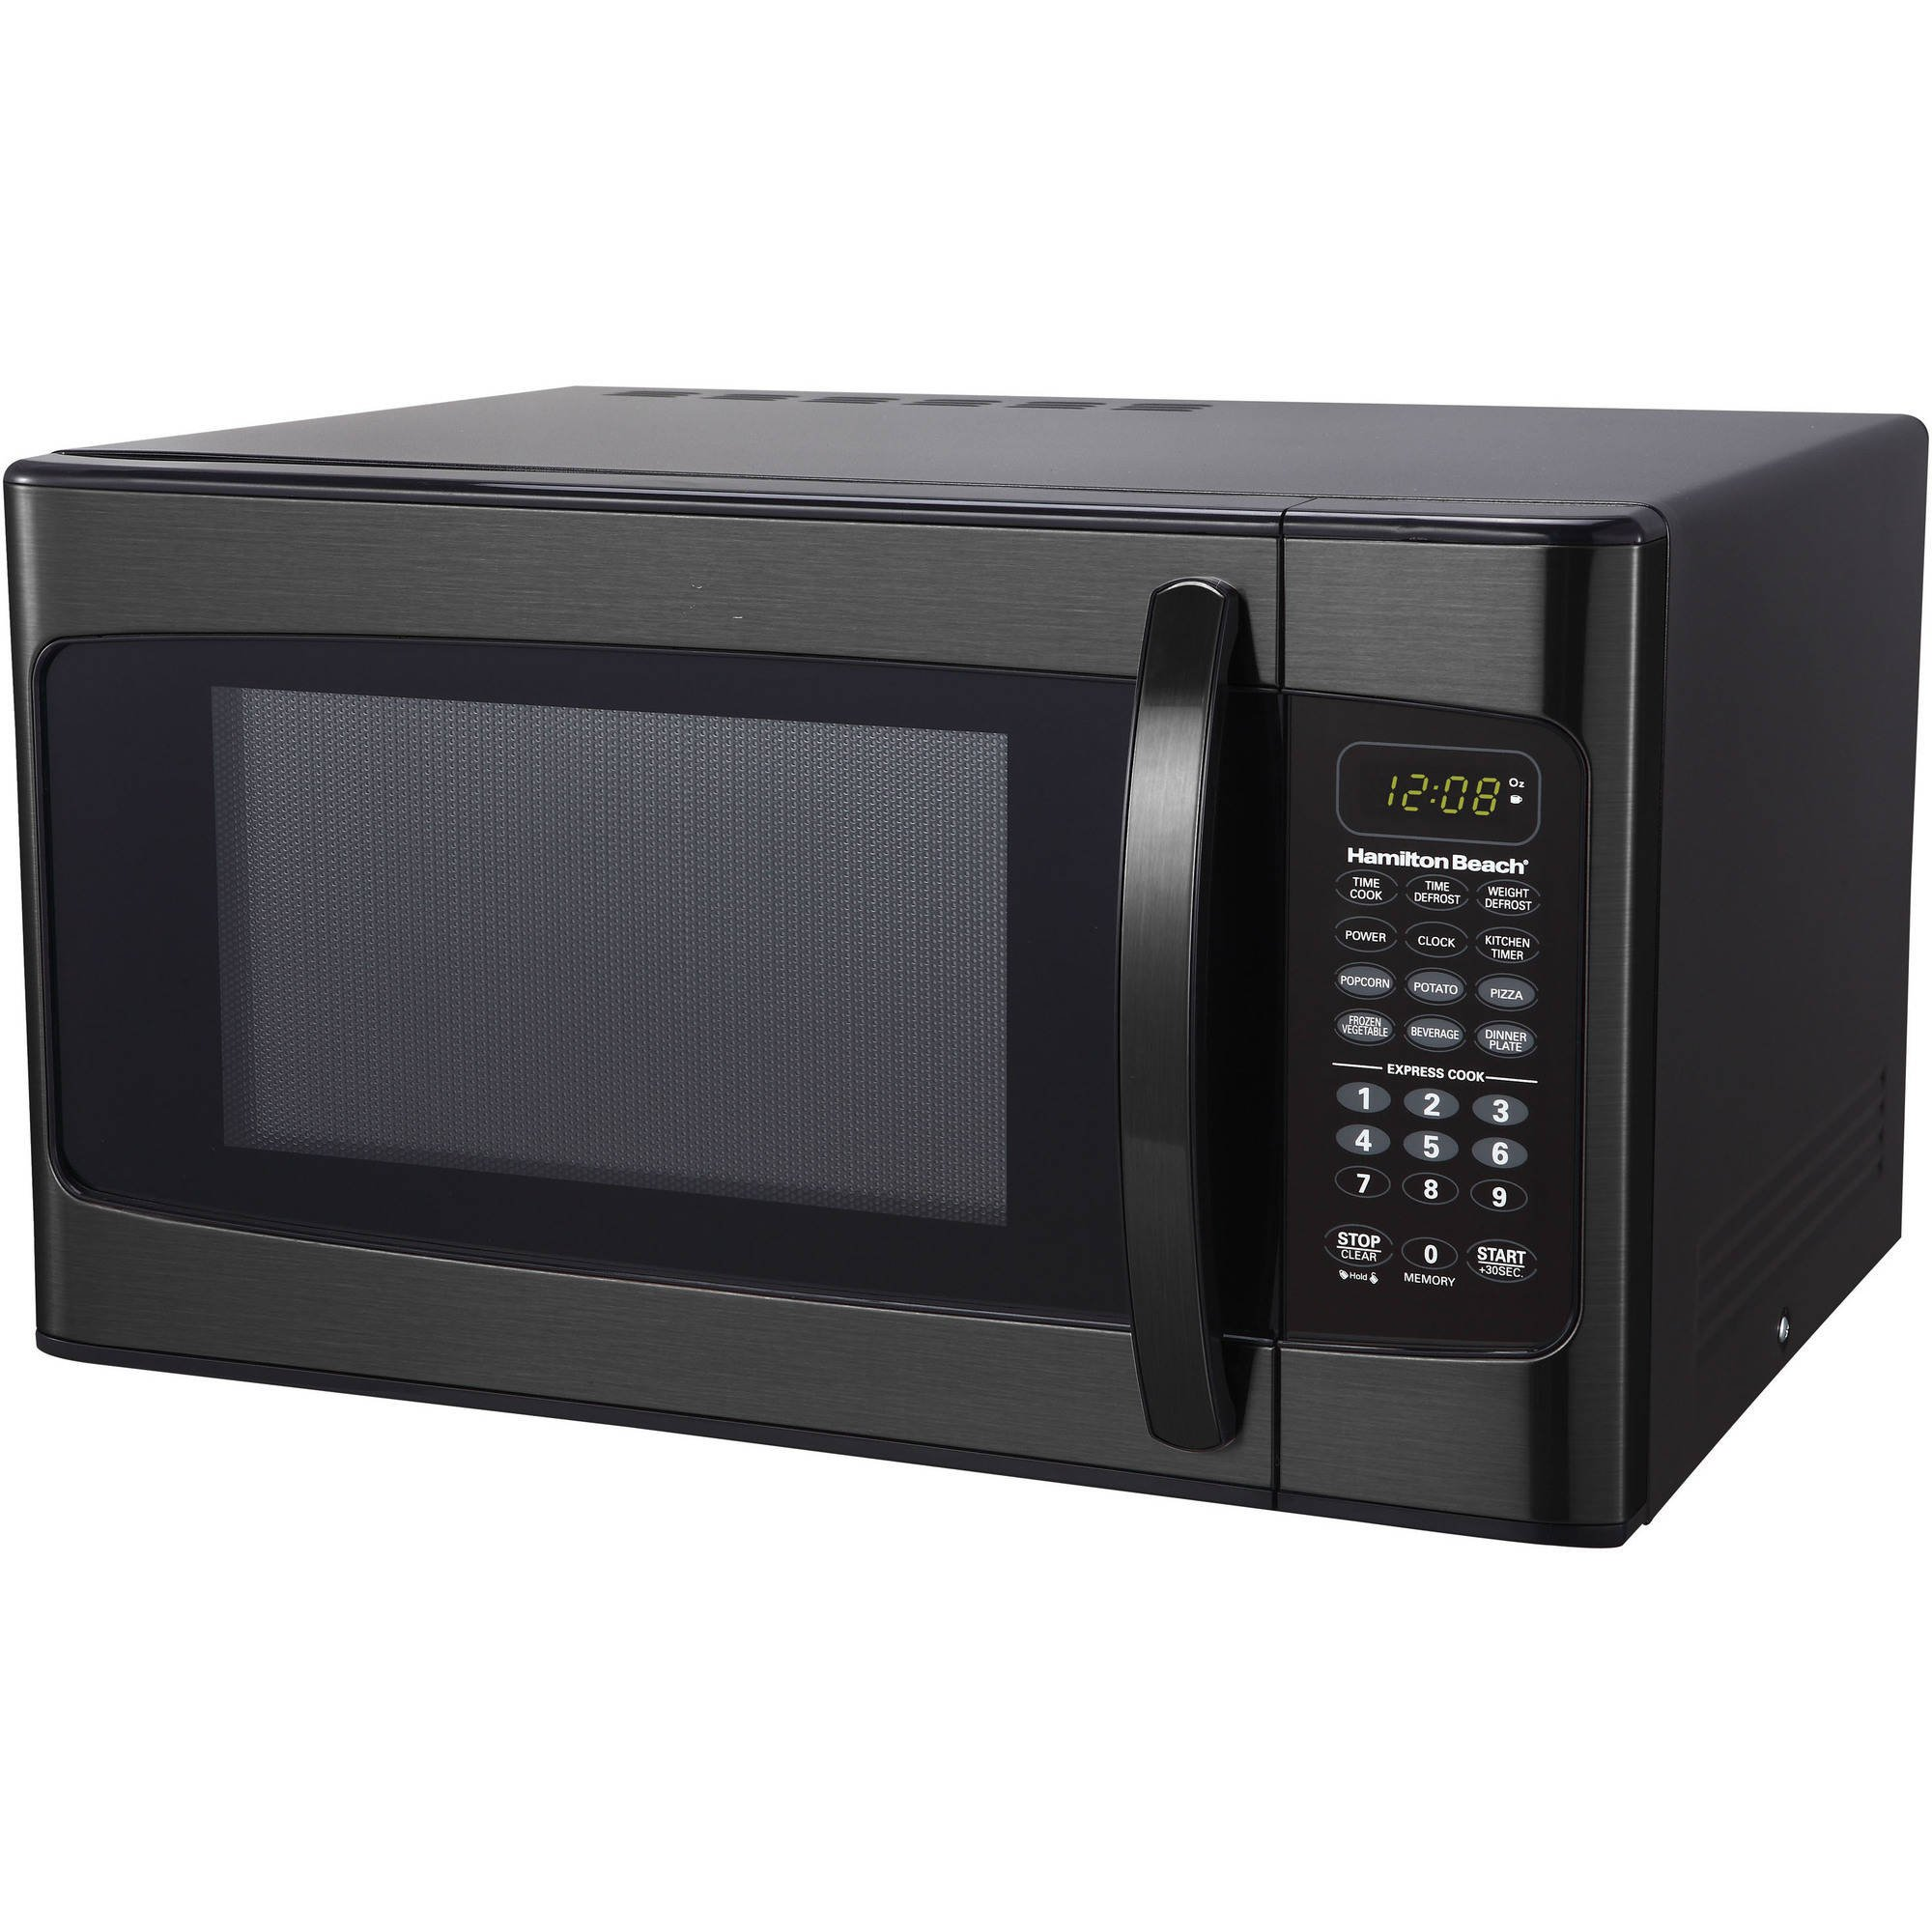 Hamilton Beach 1.1 cu ft Microwave Oven, Black Stainless Steel